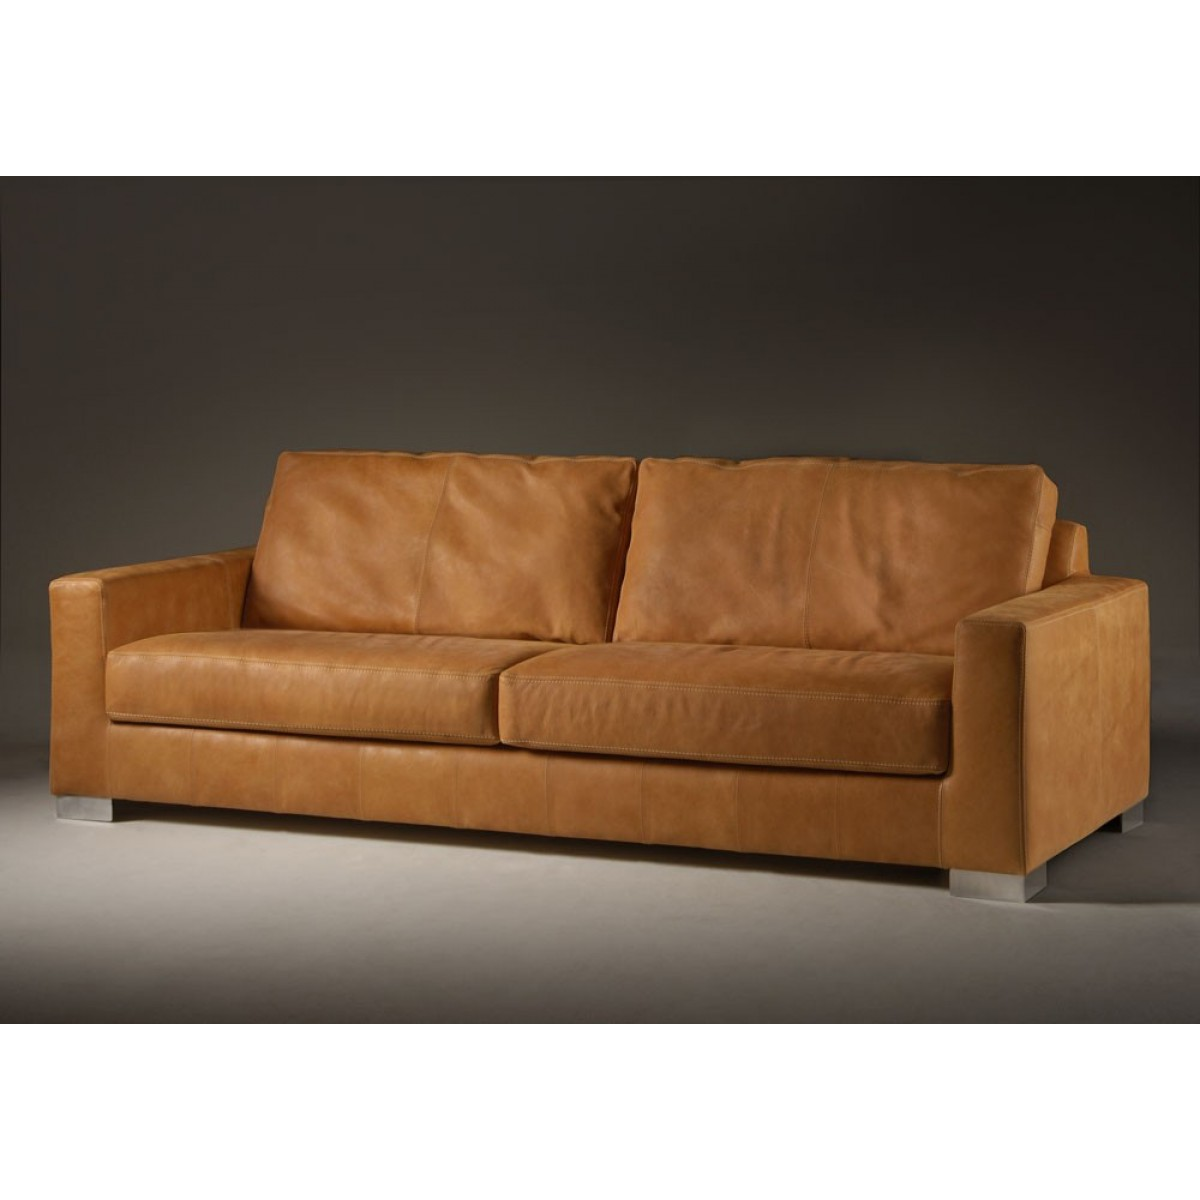 eldorado sofa robusten ledersofa i live design preisg nstig online moebel kaufen. Black Bedroom Furniture Sets. Home Design Ideas